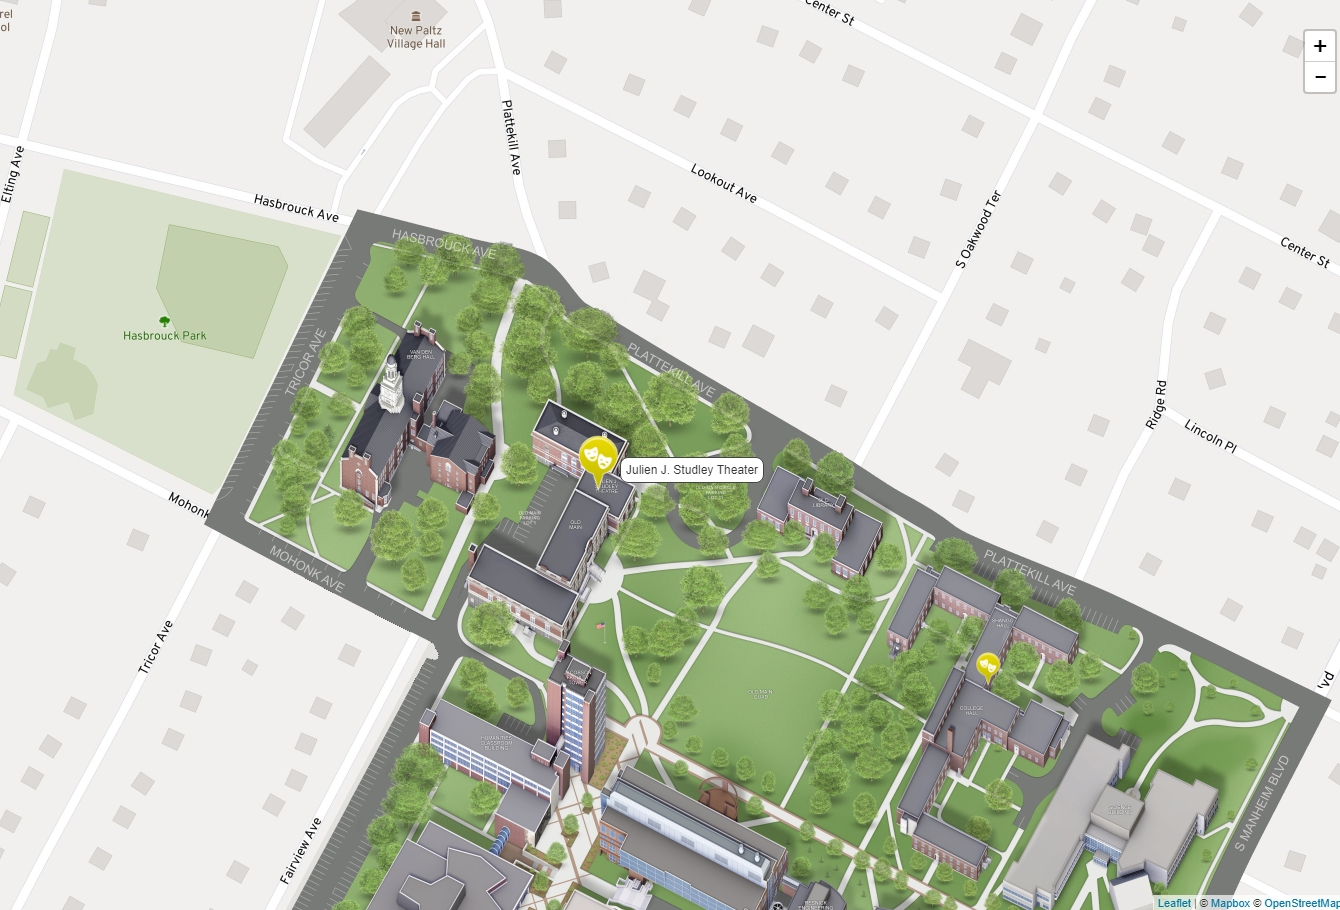 Excerpt of map showing location of the Studley Theatre on the campus of SUNY New Paltz.